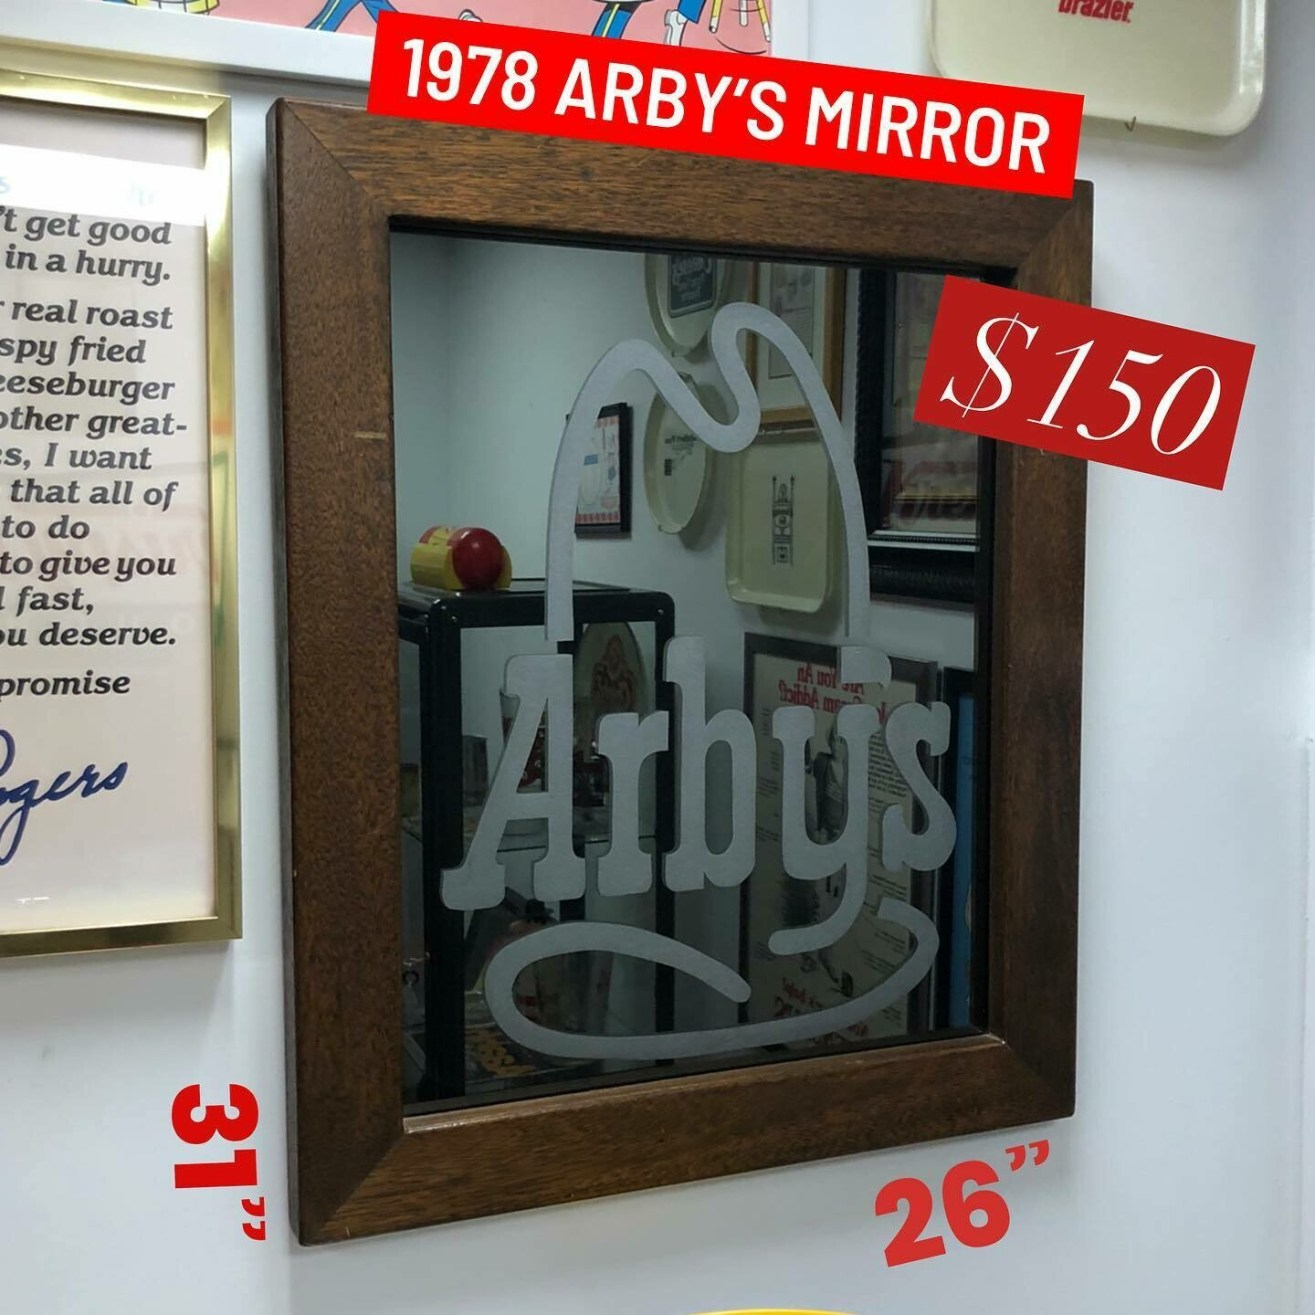 Arby's Mirror from 1978